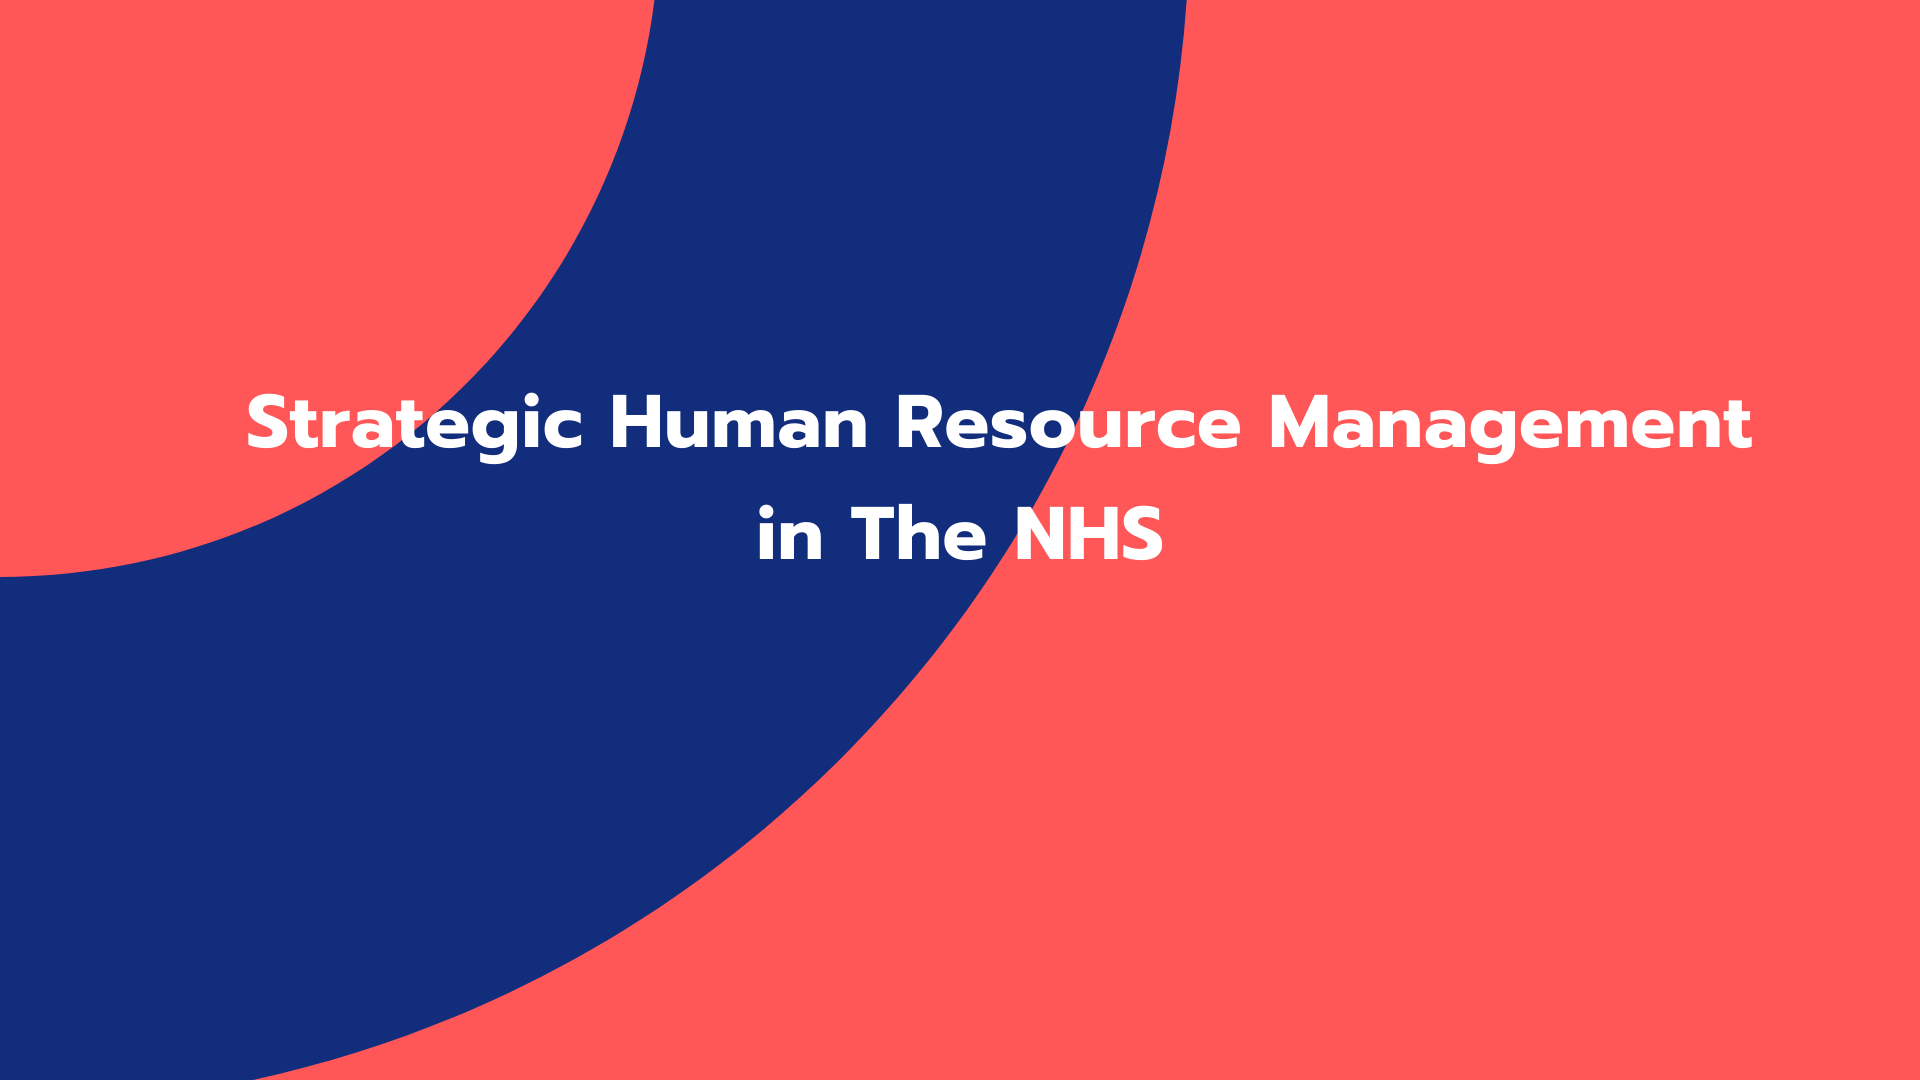 Strategic Human Resource Management in The NHS